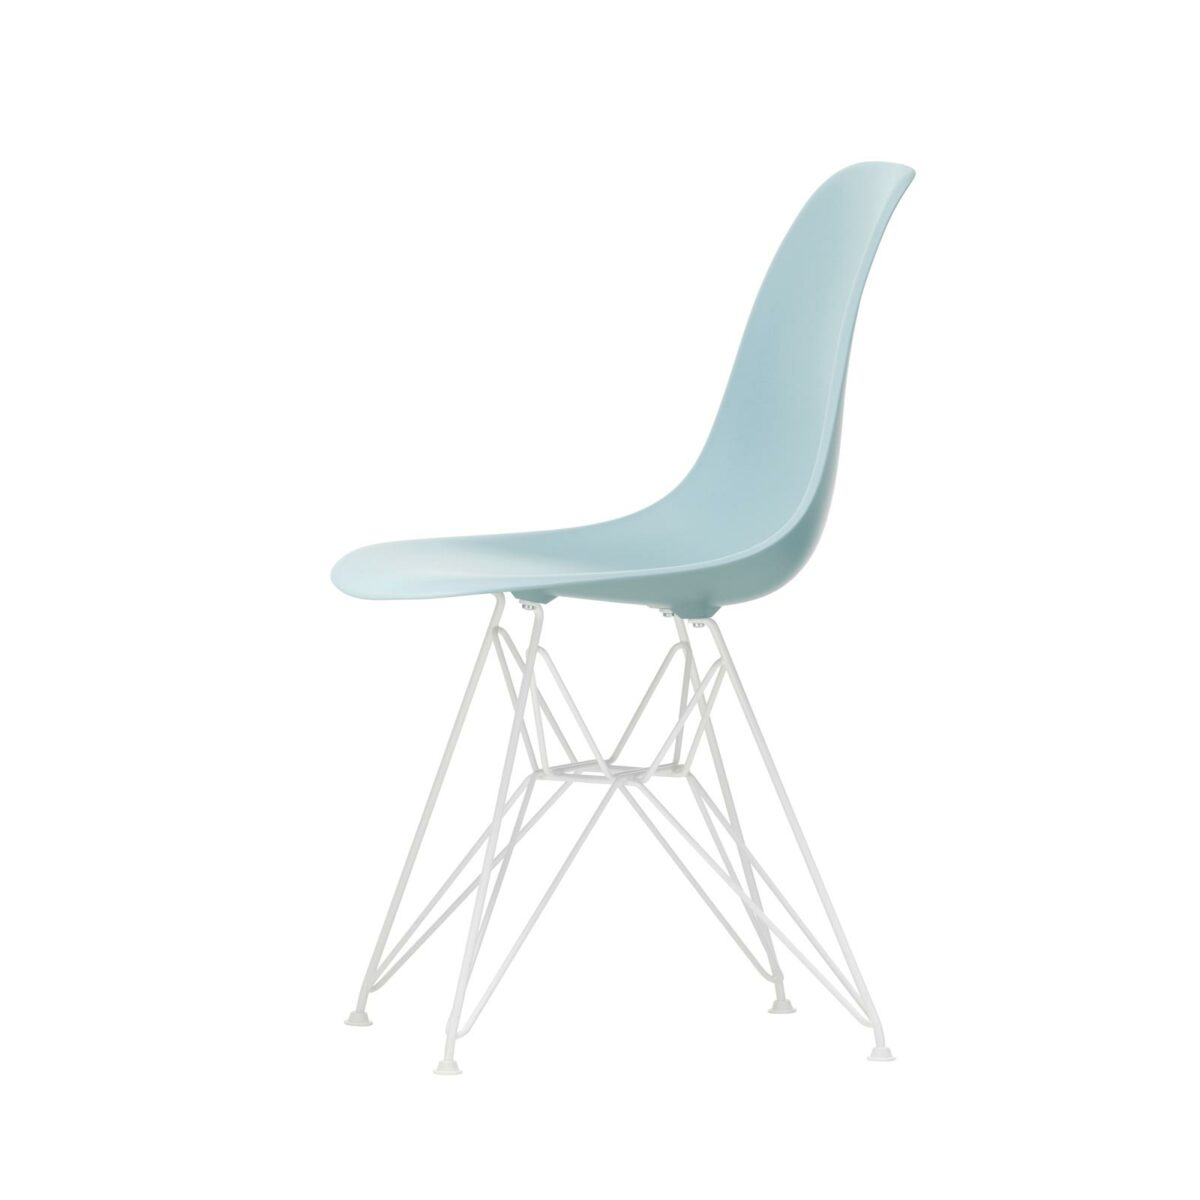 3034948 Eames Plastic Side Chair DSR 23 ice grey 04 white powder coated left master